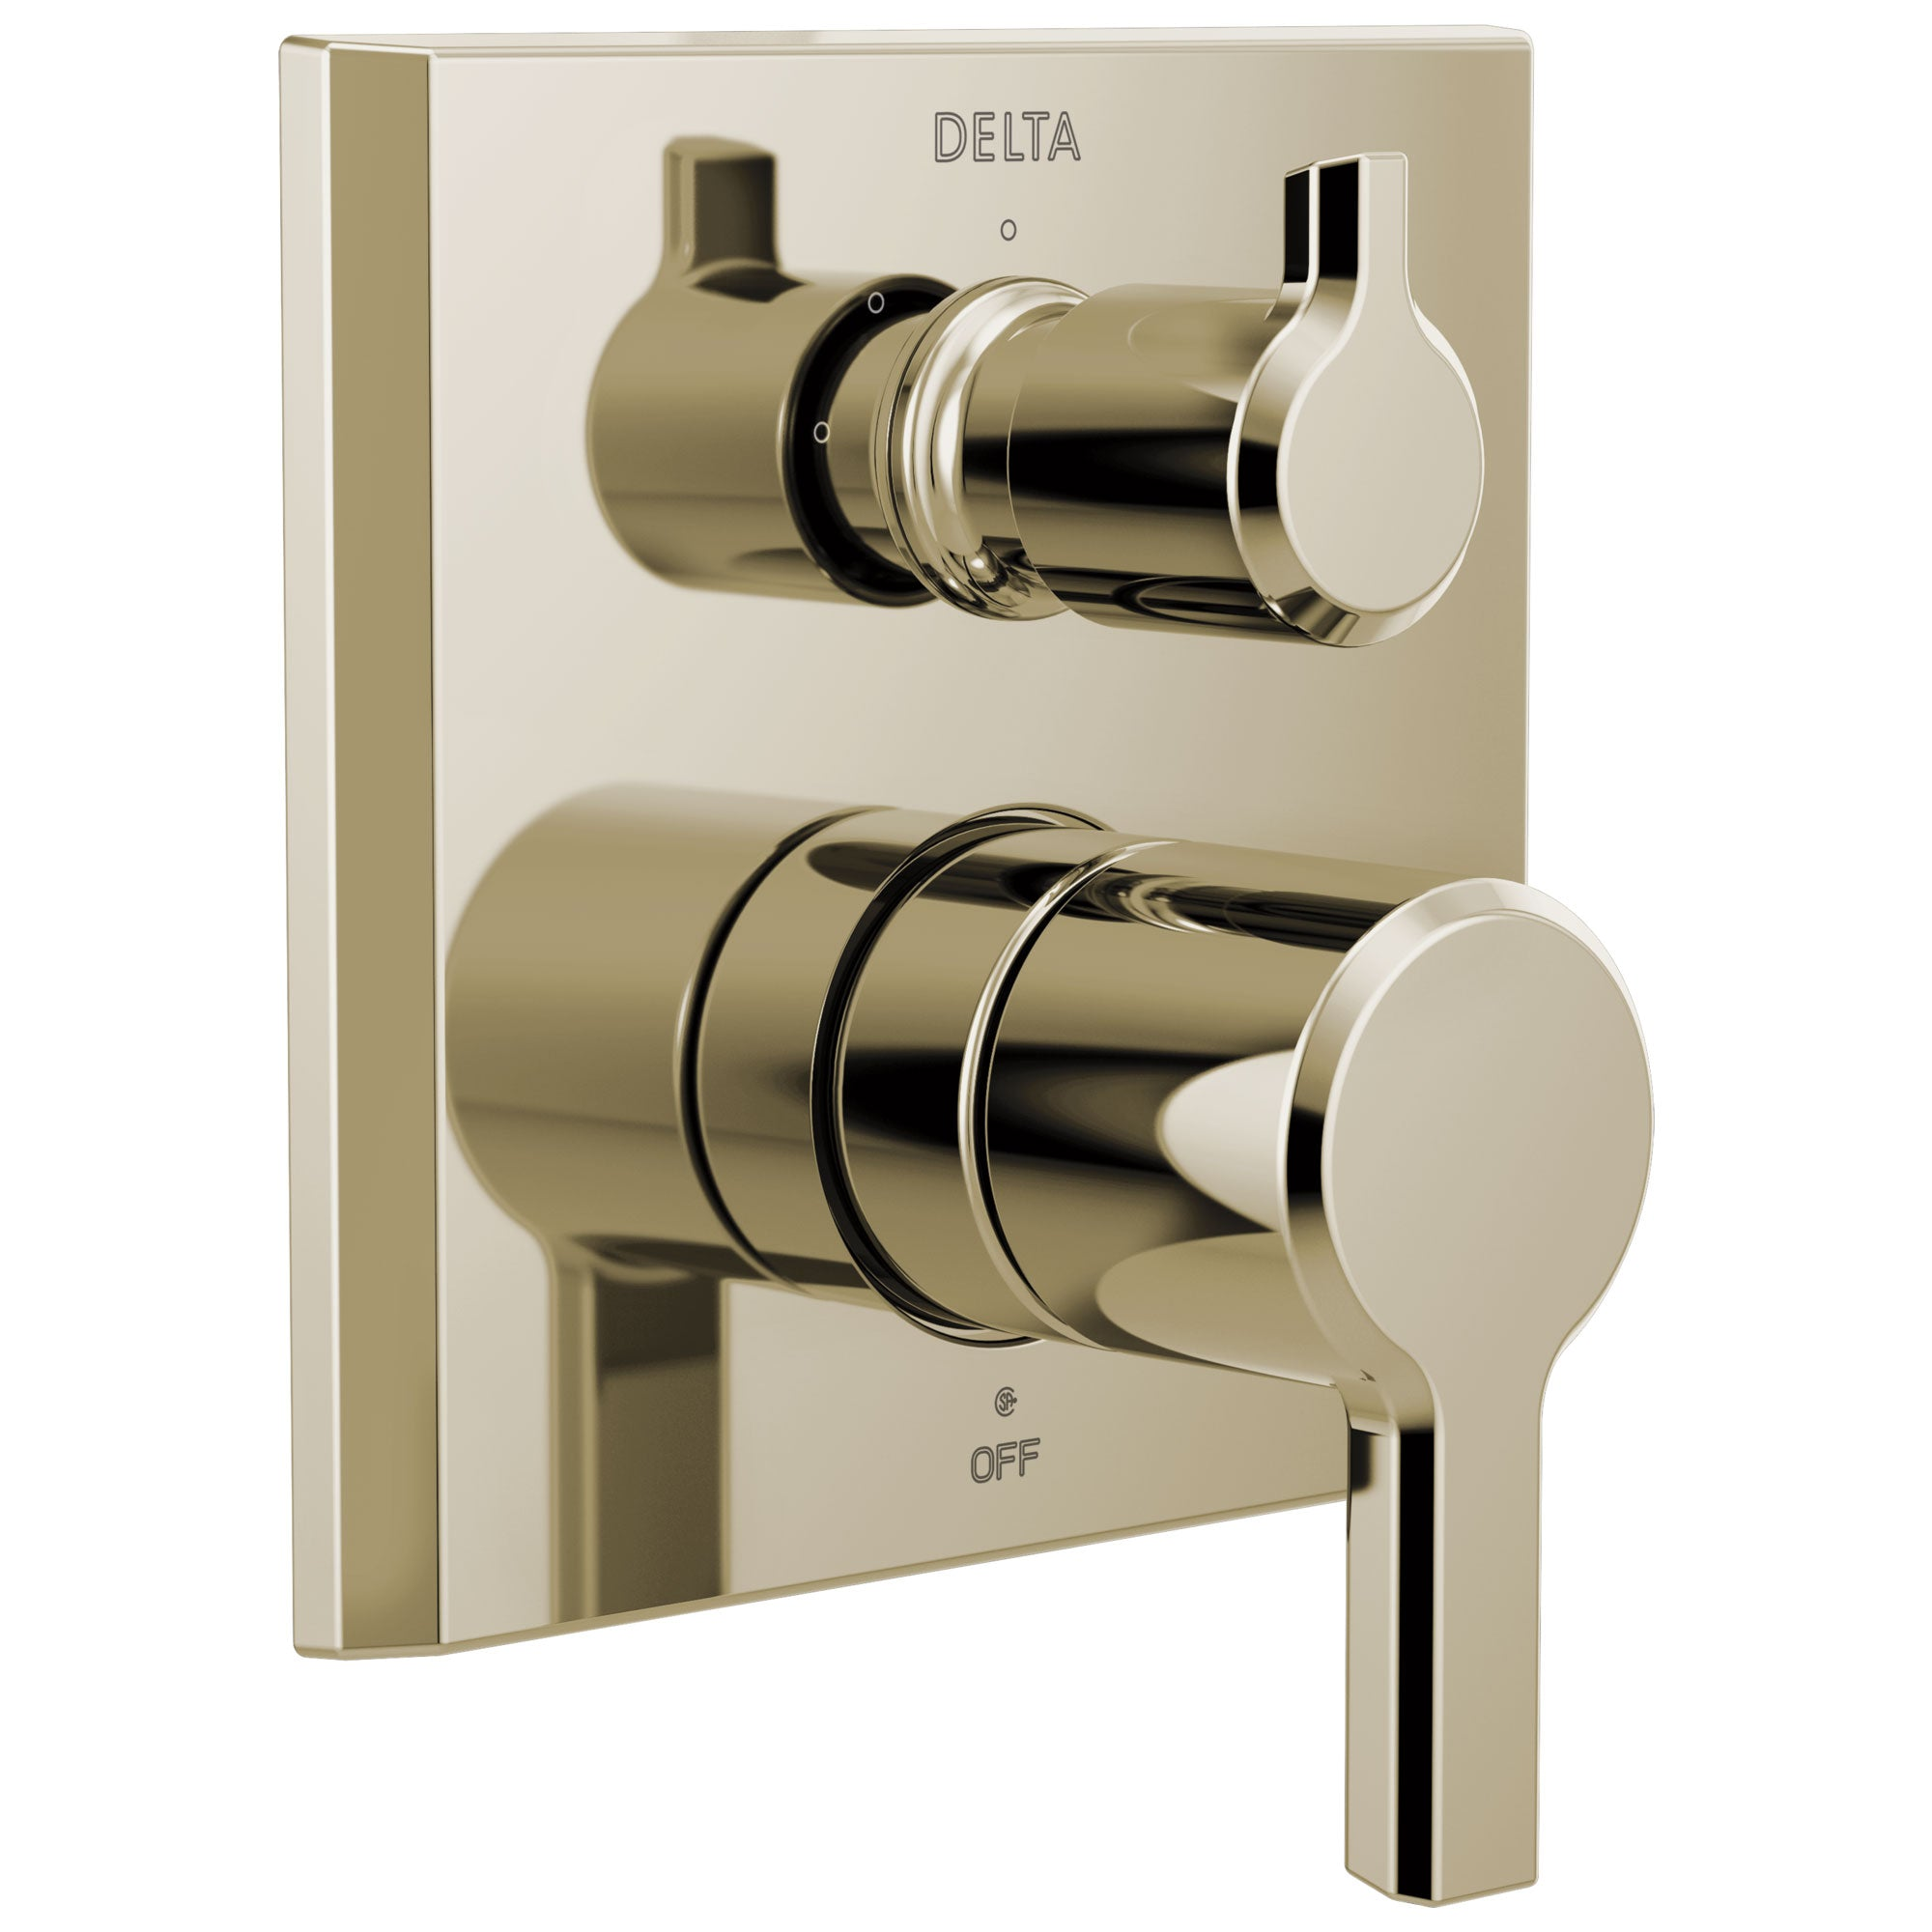 Delta Pivotal Polished Nickel Finish 14 Series Shower Faucet System Control with 3-Setting Integrated Diverter Includes Valve and Handles D3760V